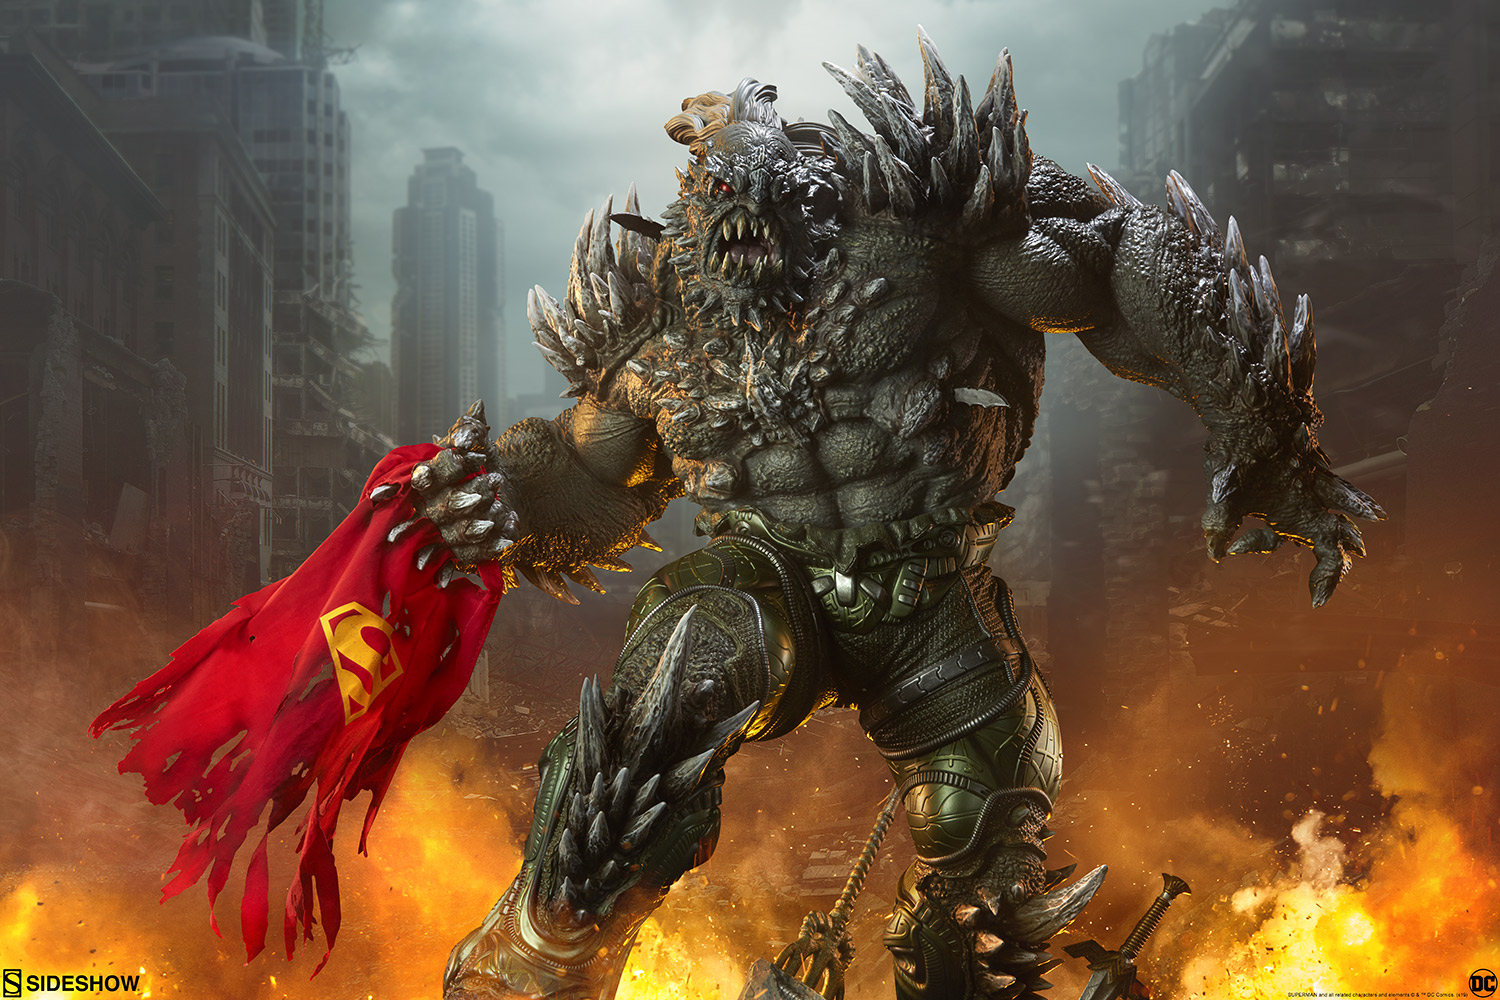 A Kryptonian Killer Emerges In The Doomsday Maquette Official